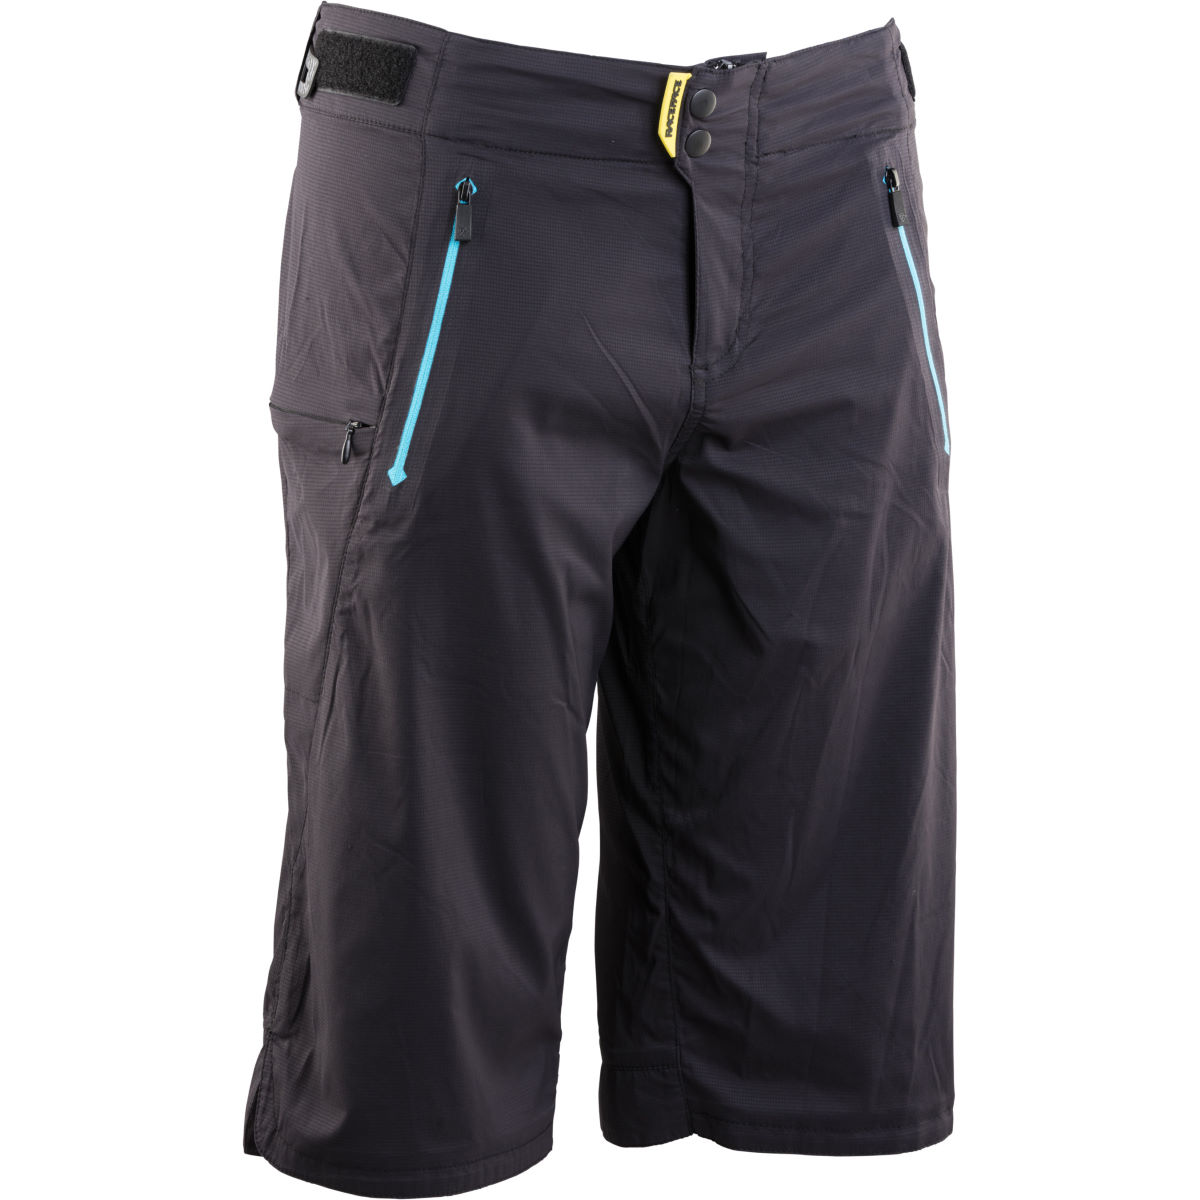 Short Femme Race Face Indiana (bleu) - XL Noir Shorts VTT